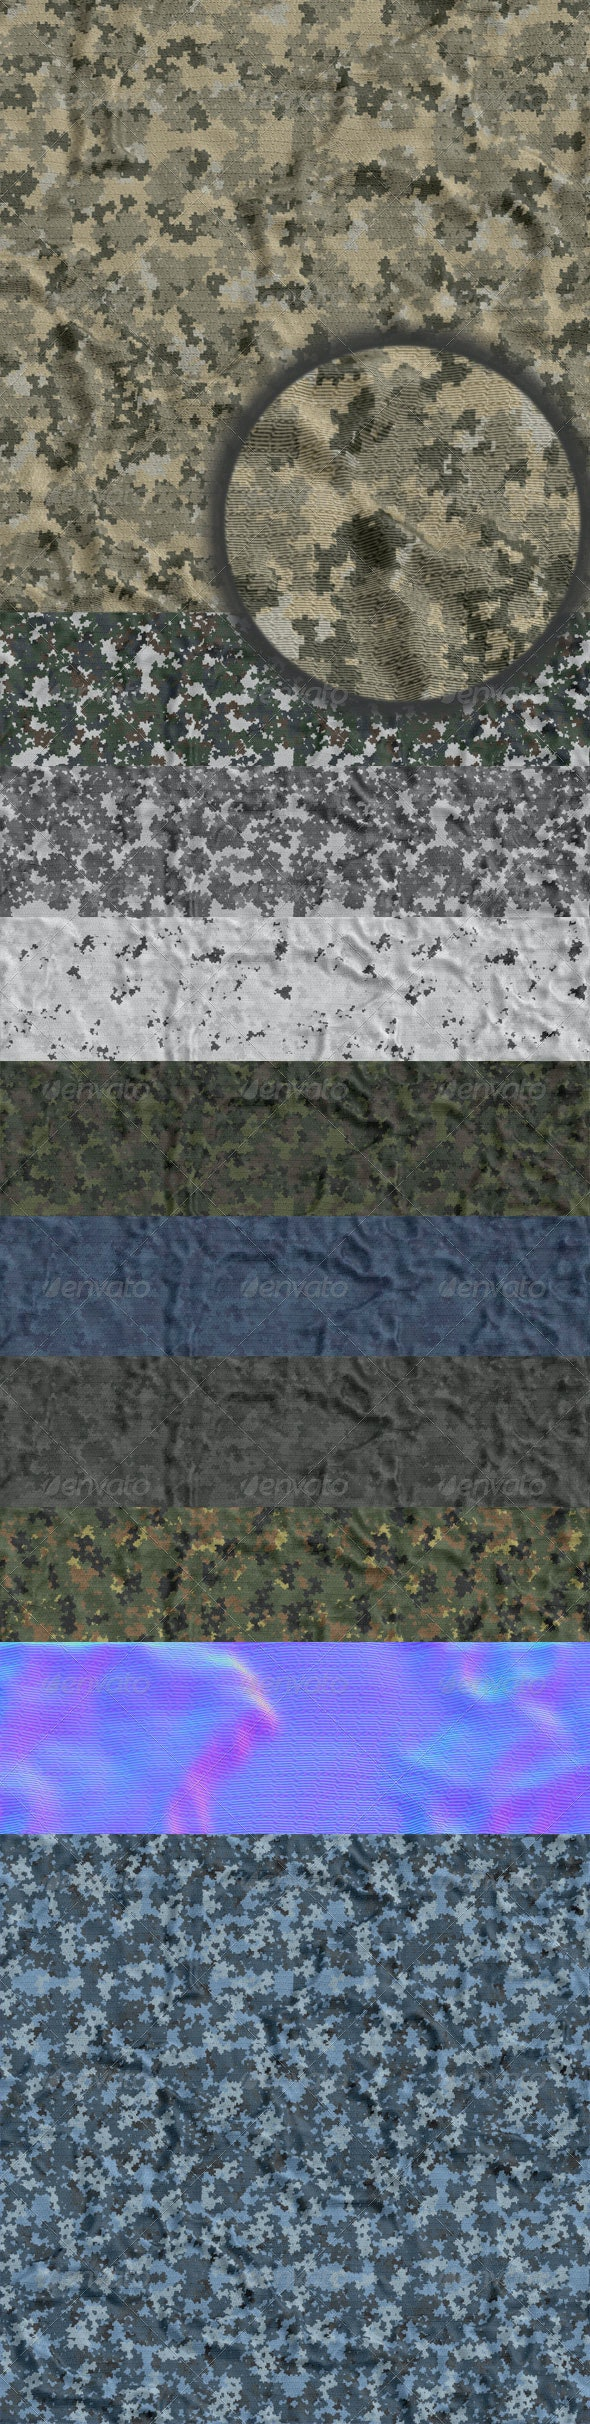 Digital Camouflage Rip-Stop Texture Pack - Fabric Textures